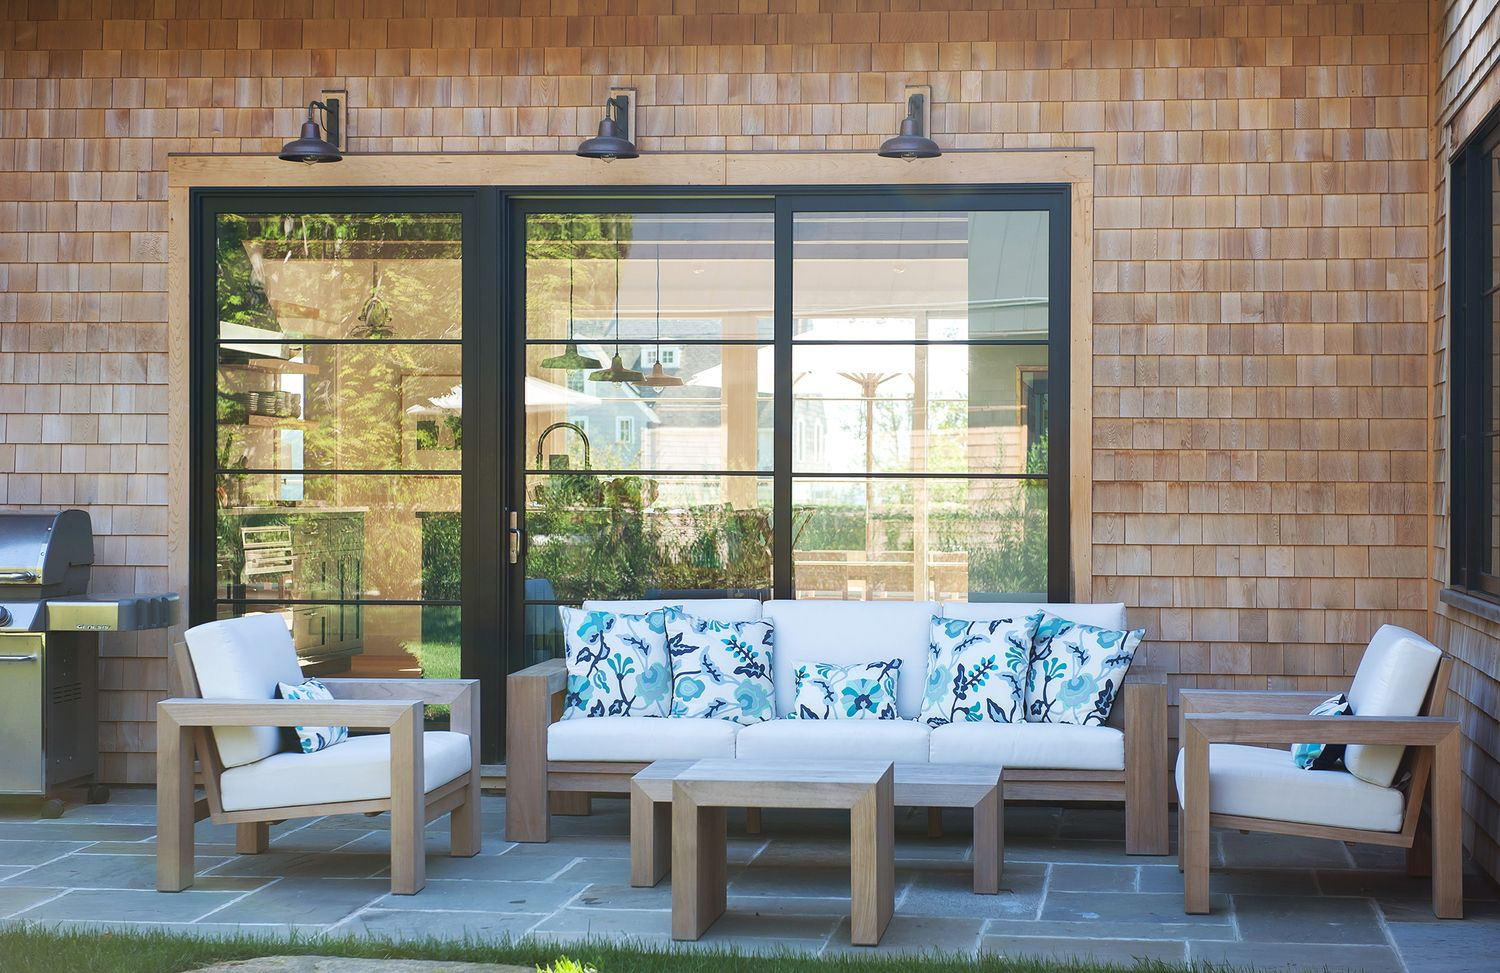 Pin by QWF 979 on BOSTON PRIVATE | Outdoor furniture sets ...